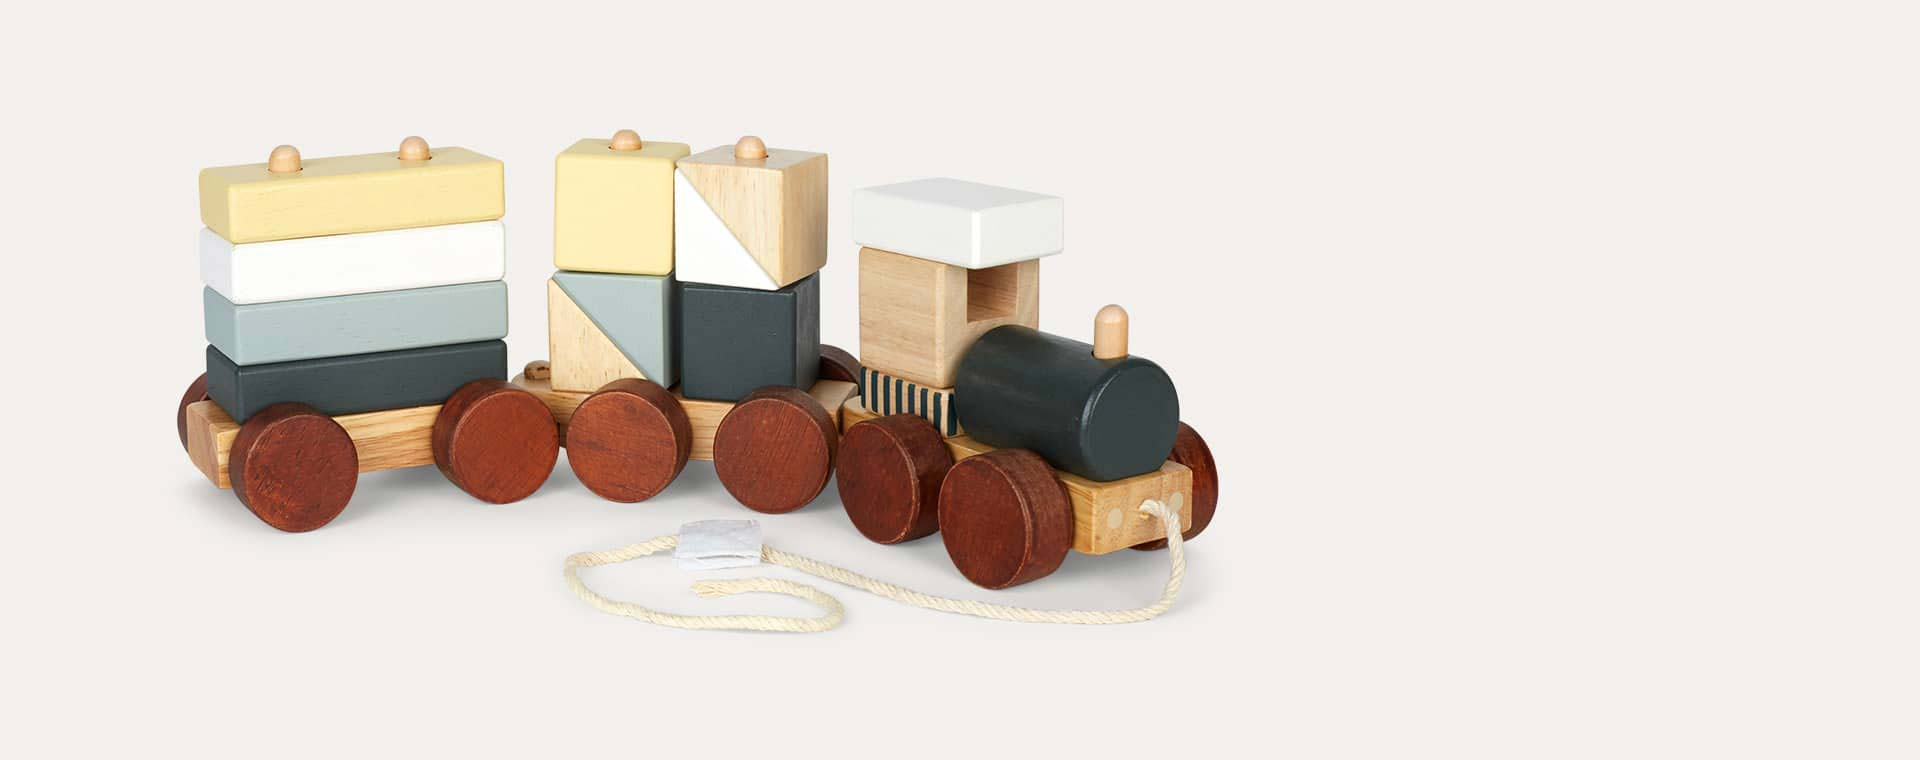 Neo Kid's Concept Neo Wooden Block Toy Train